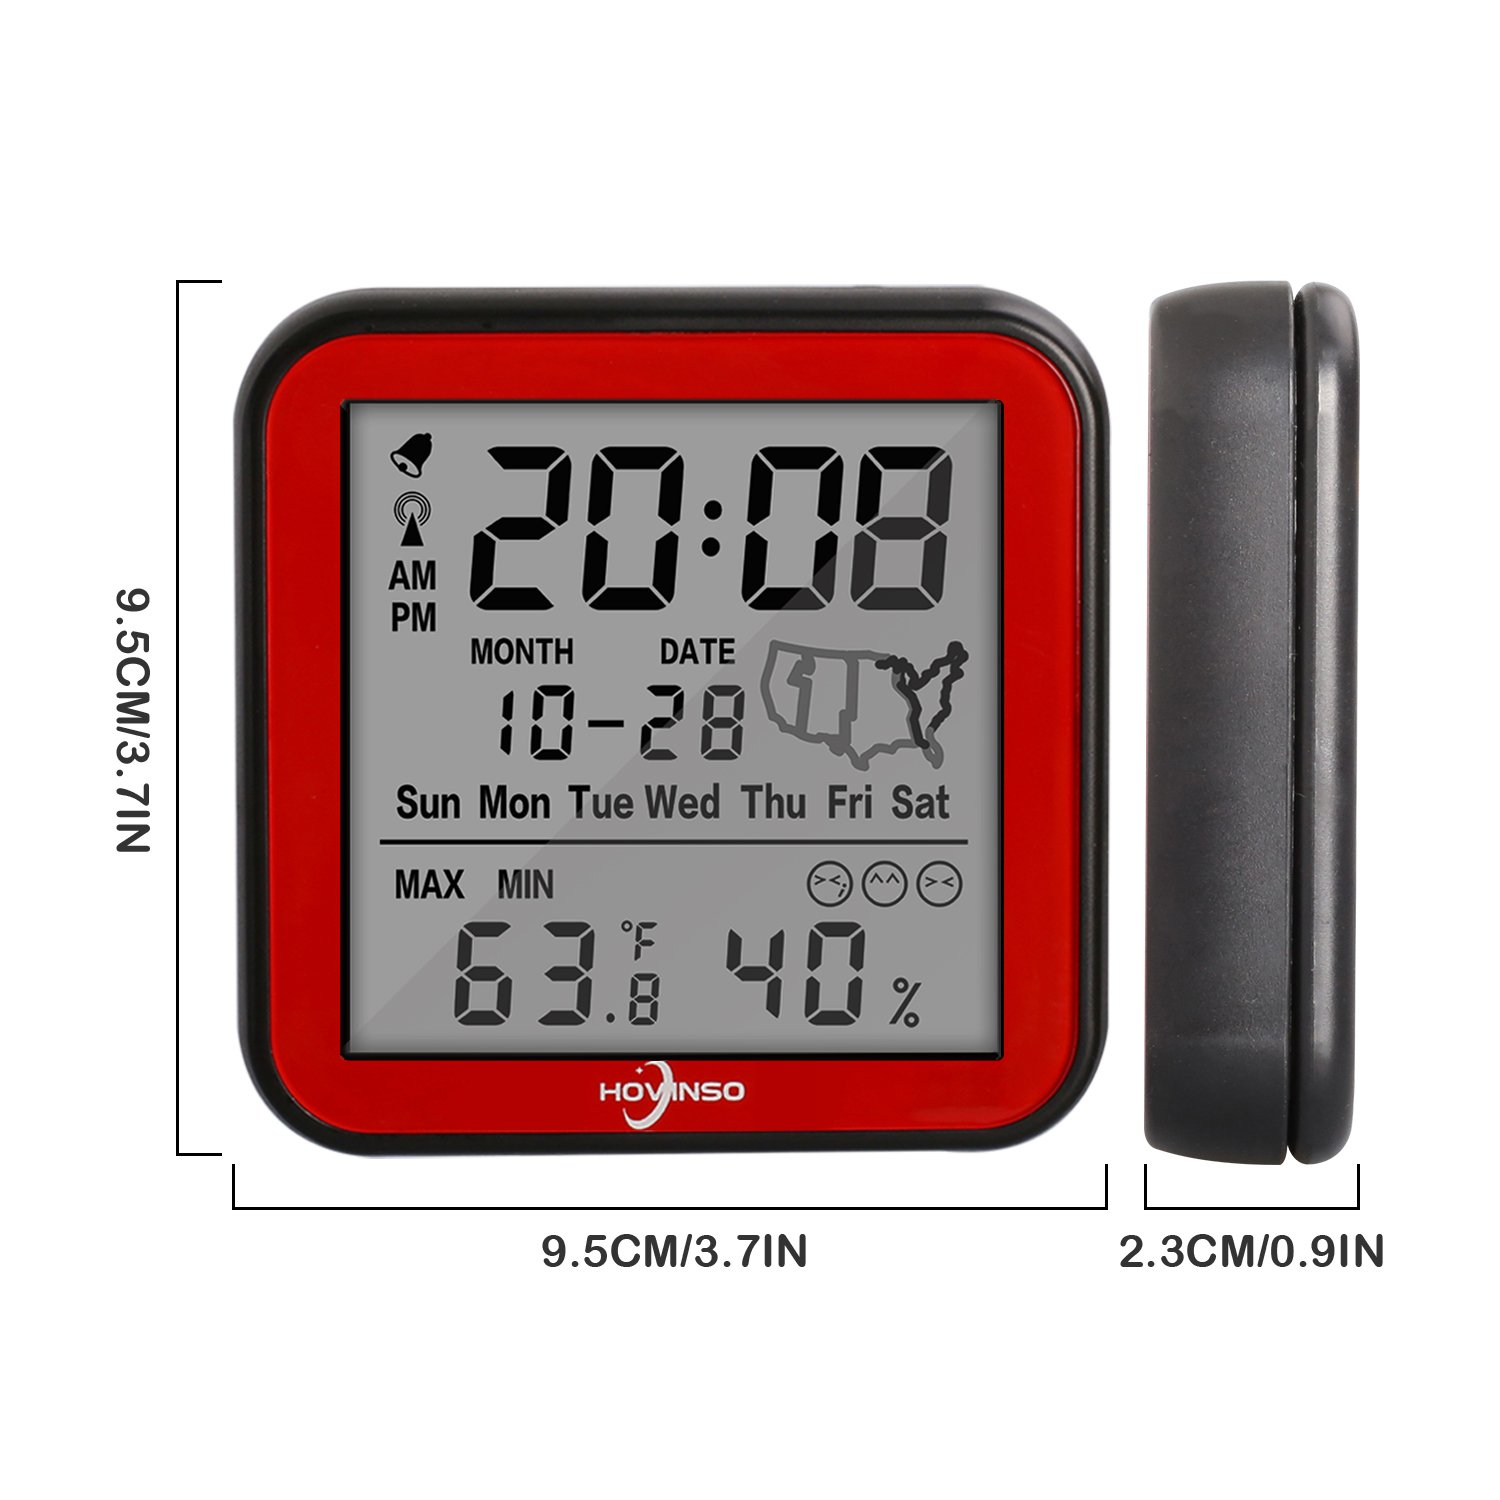 Hovinso Weather Station Clock with Temperature and Humidity Monitor, Indoor Wireless Radio Atomic Alarm Clock for Home Bedroom by Hovinso (Image #6)